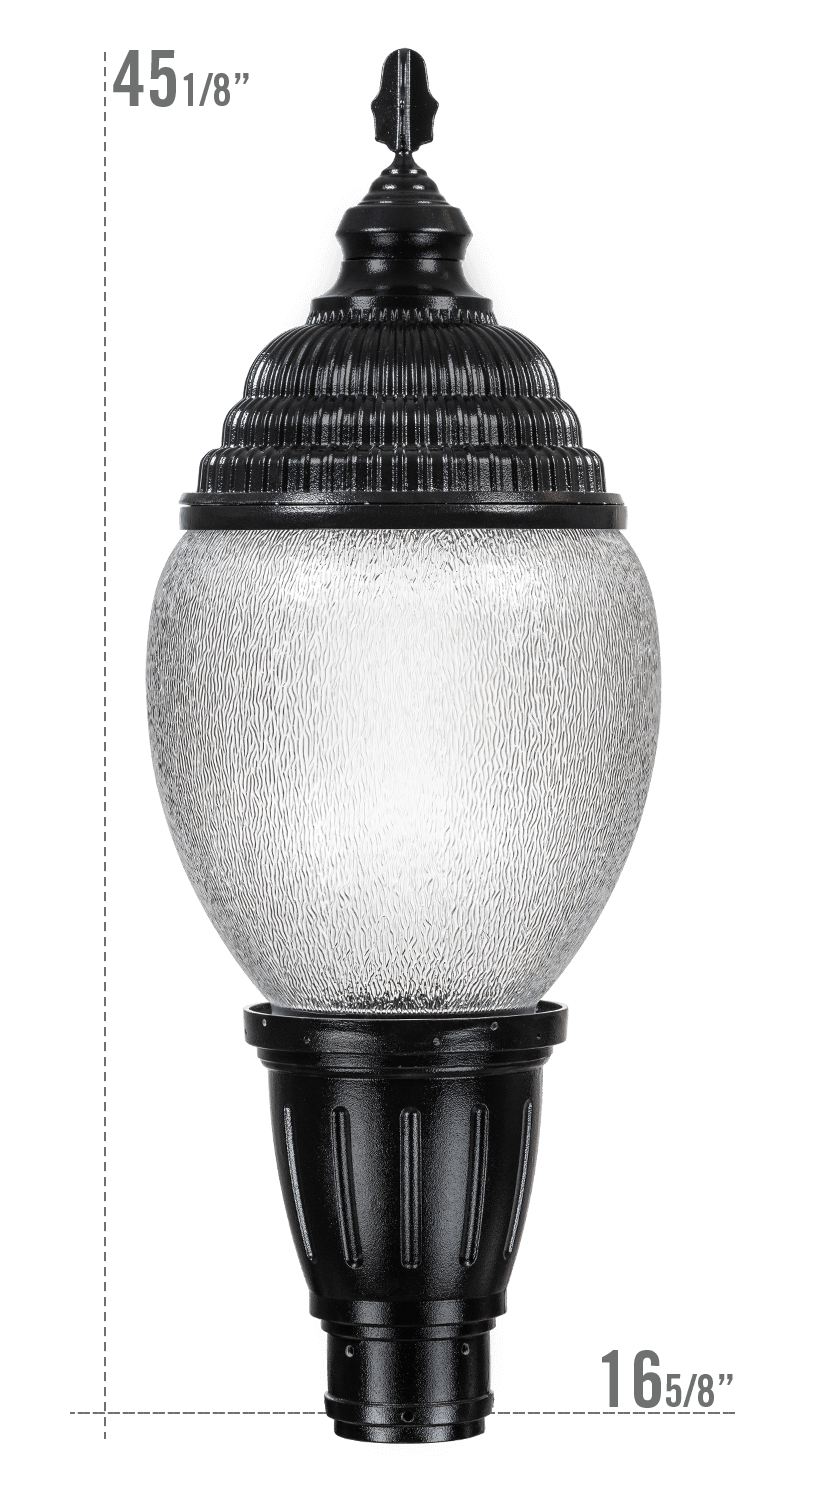 Key West LED Luminaire YS11 Globe